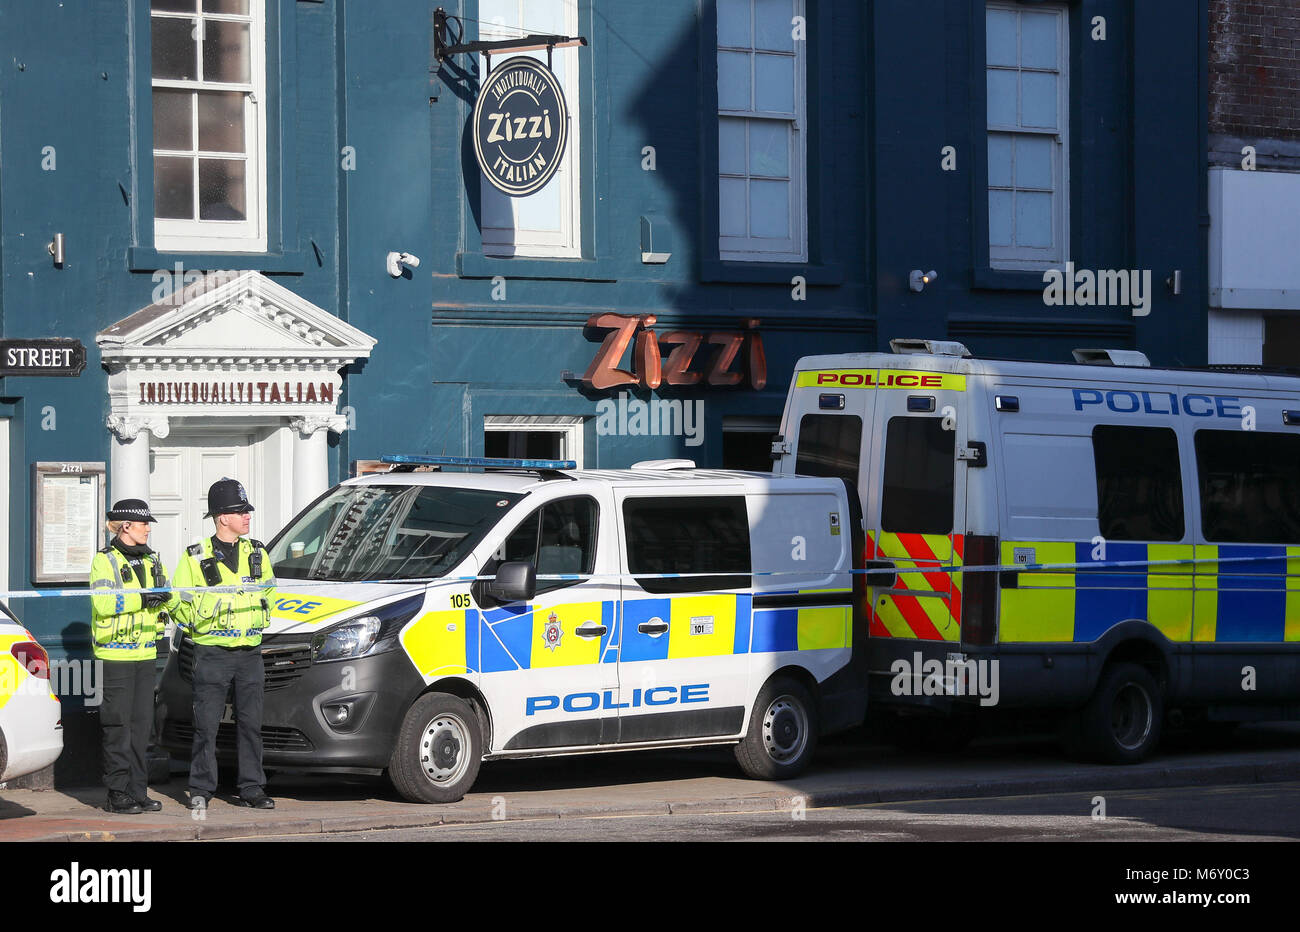 Image result for zizzi skripal